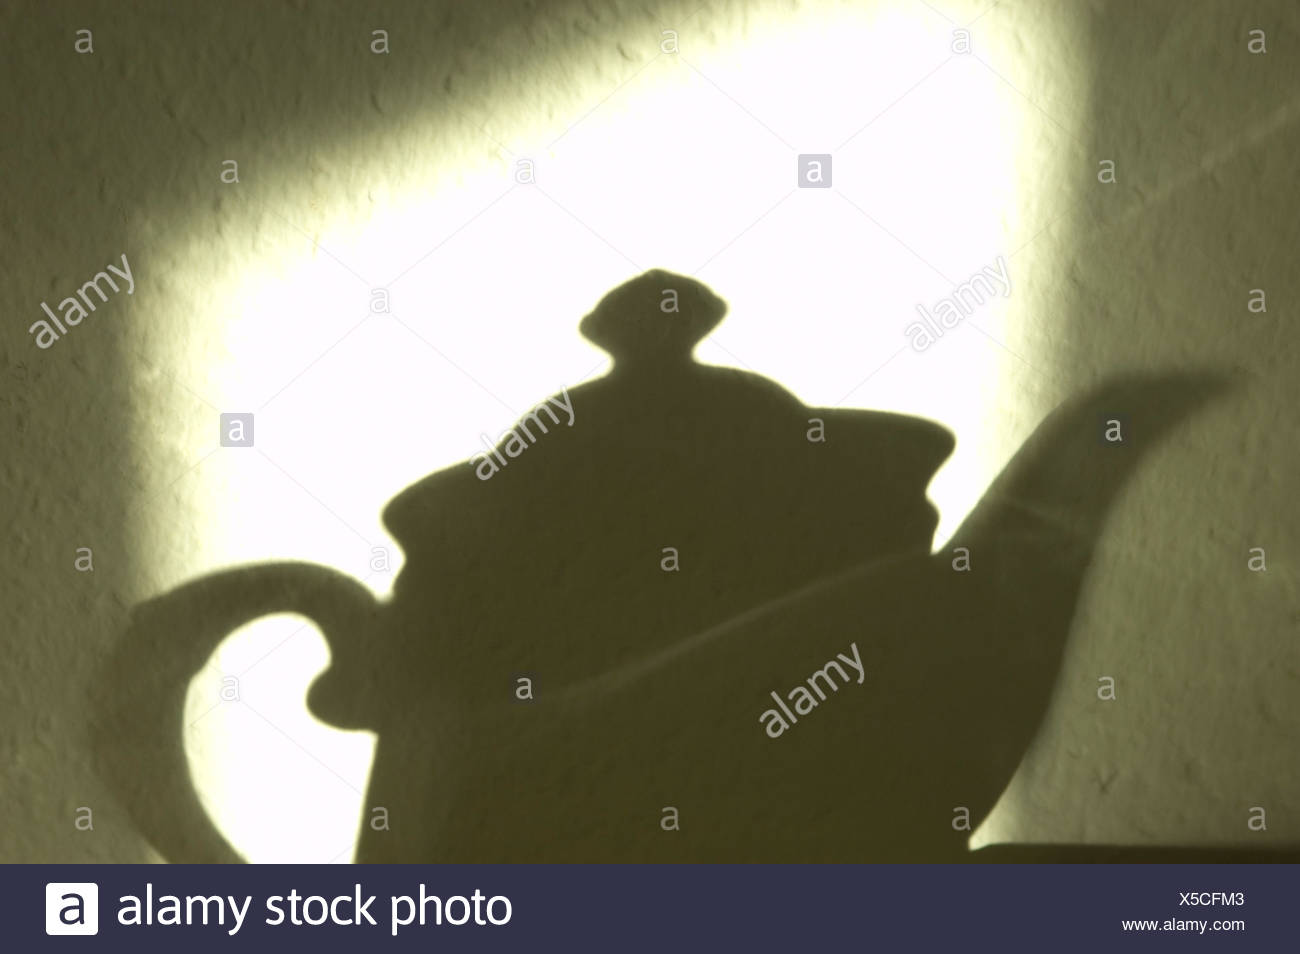 The morning sun is drawing the shaddow of a coffepot on the wall - Stock Image